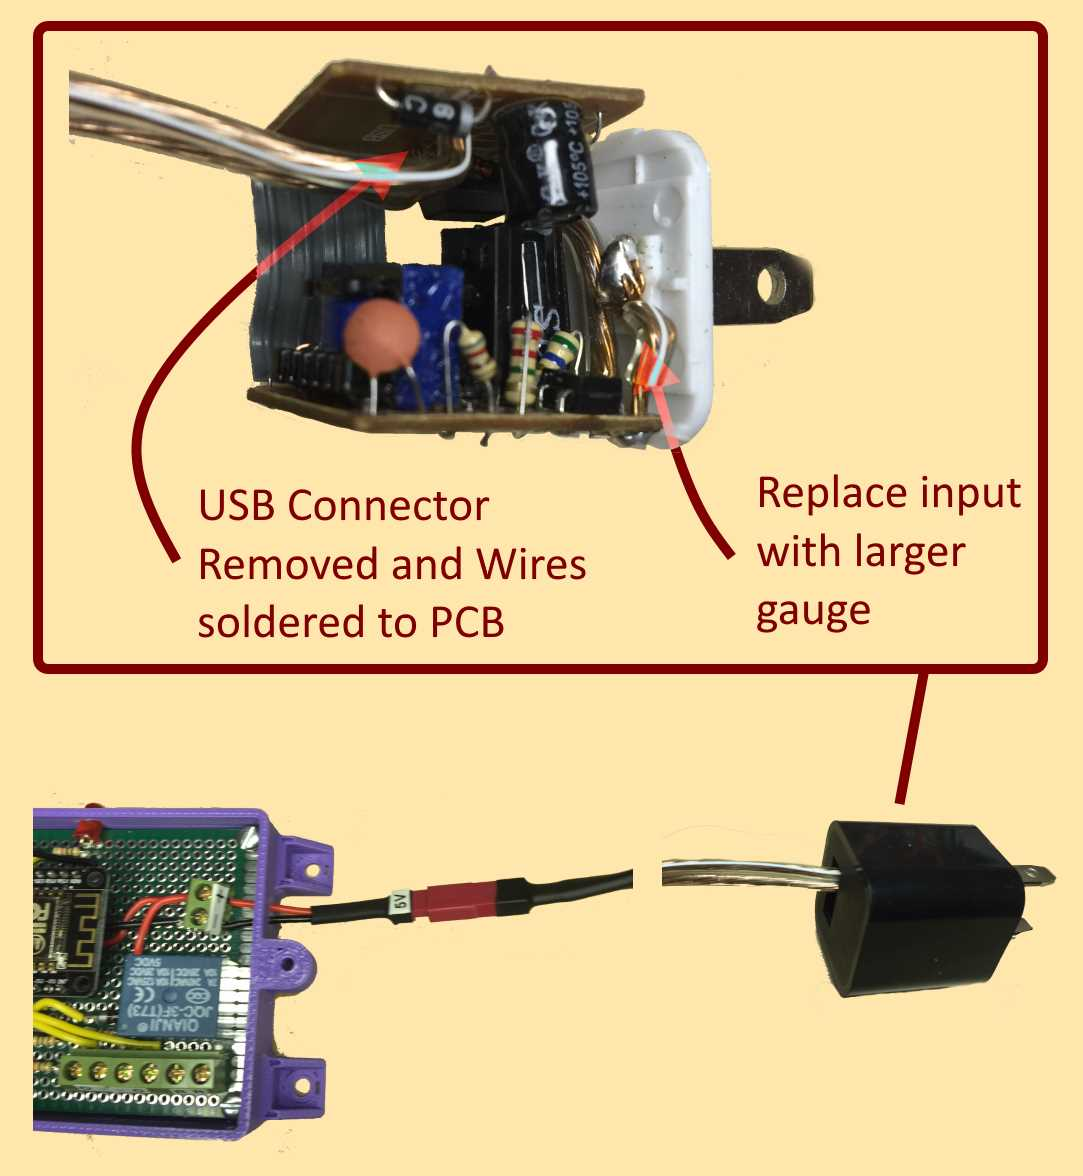 Hack a USB charger for IoT